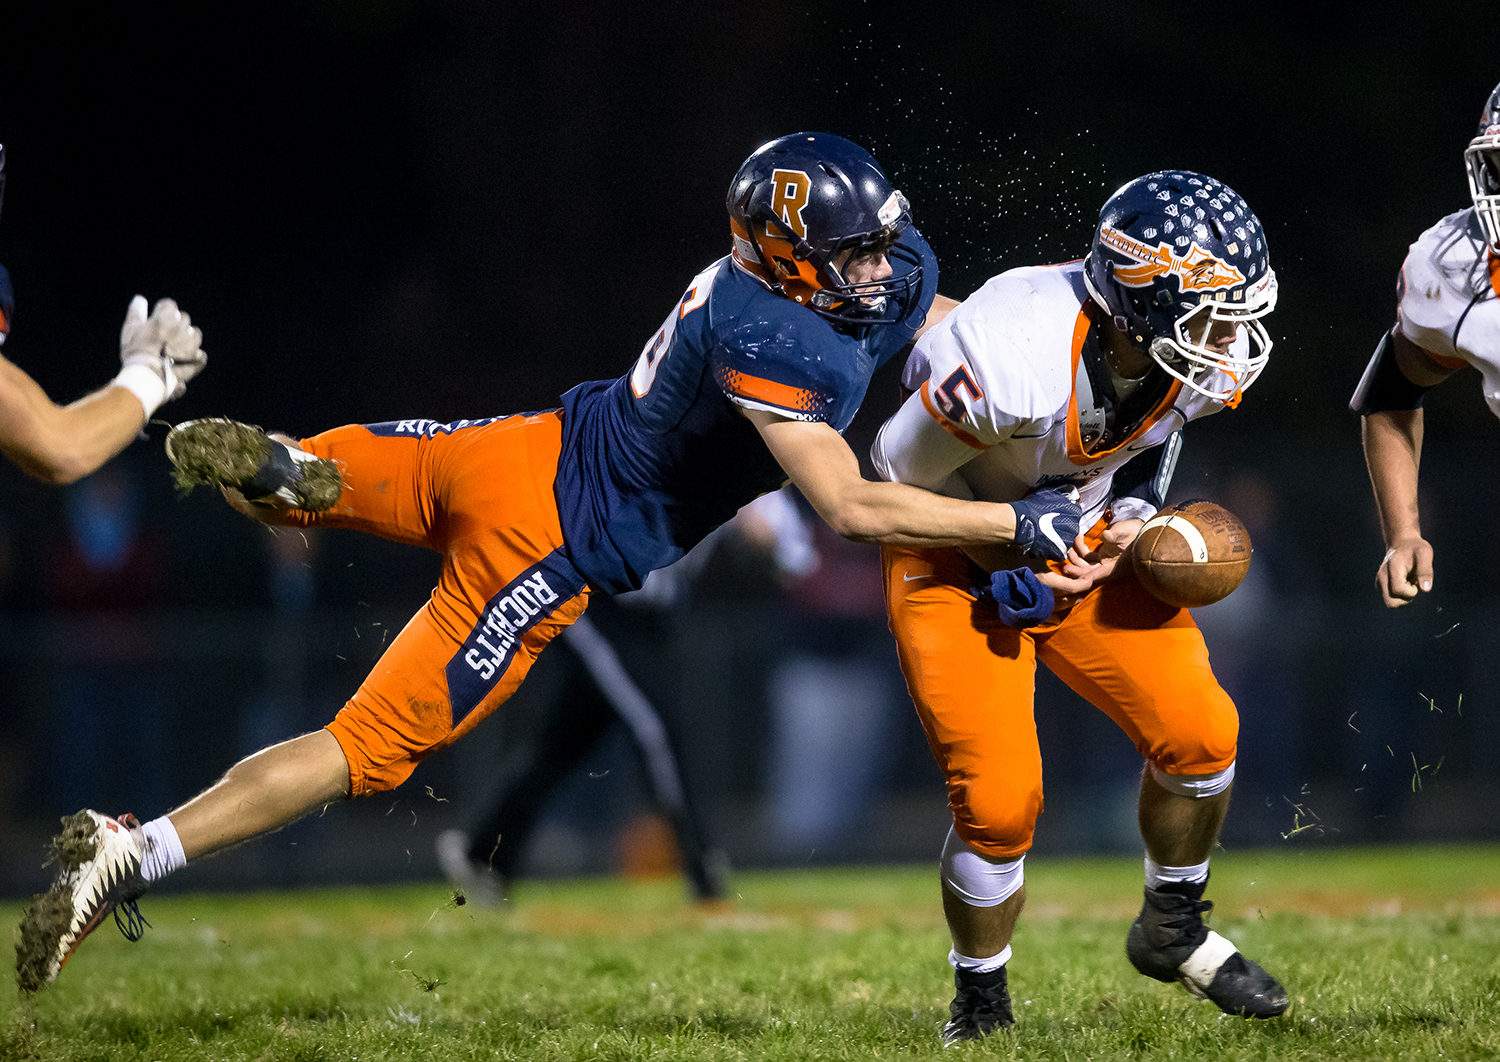 Rochester's Ethan Vose (86) forces a fumble from Pontiac quarterback Ben Schuler (5) in the first half in the second round of the Class 4A playoffs at Rochester High School, Saturday, Nov. 3, 2018, in Rochester, Ill. [Justin L. Fowler/The State Journal-Register]